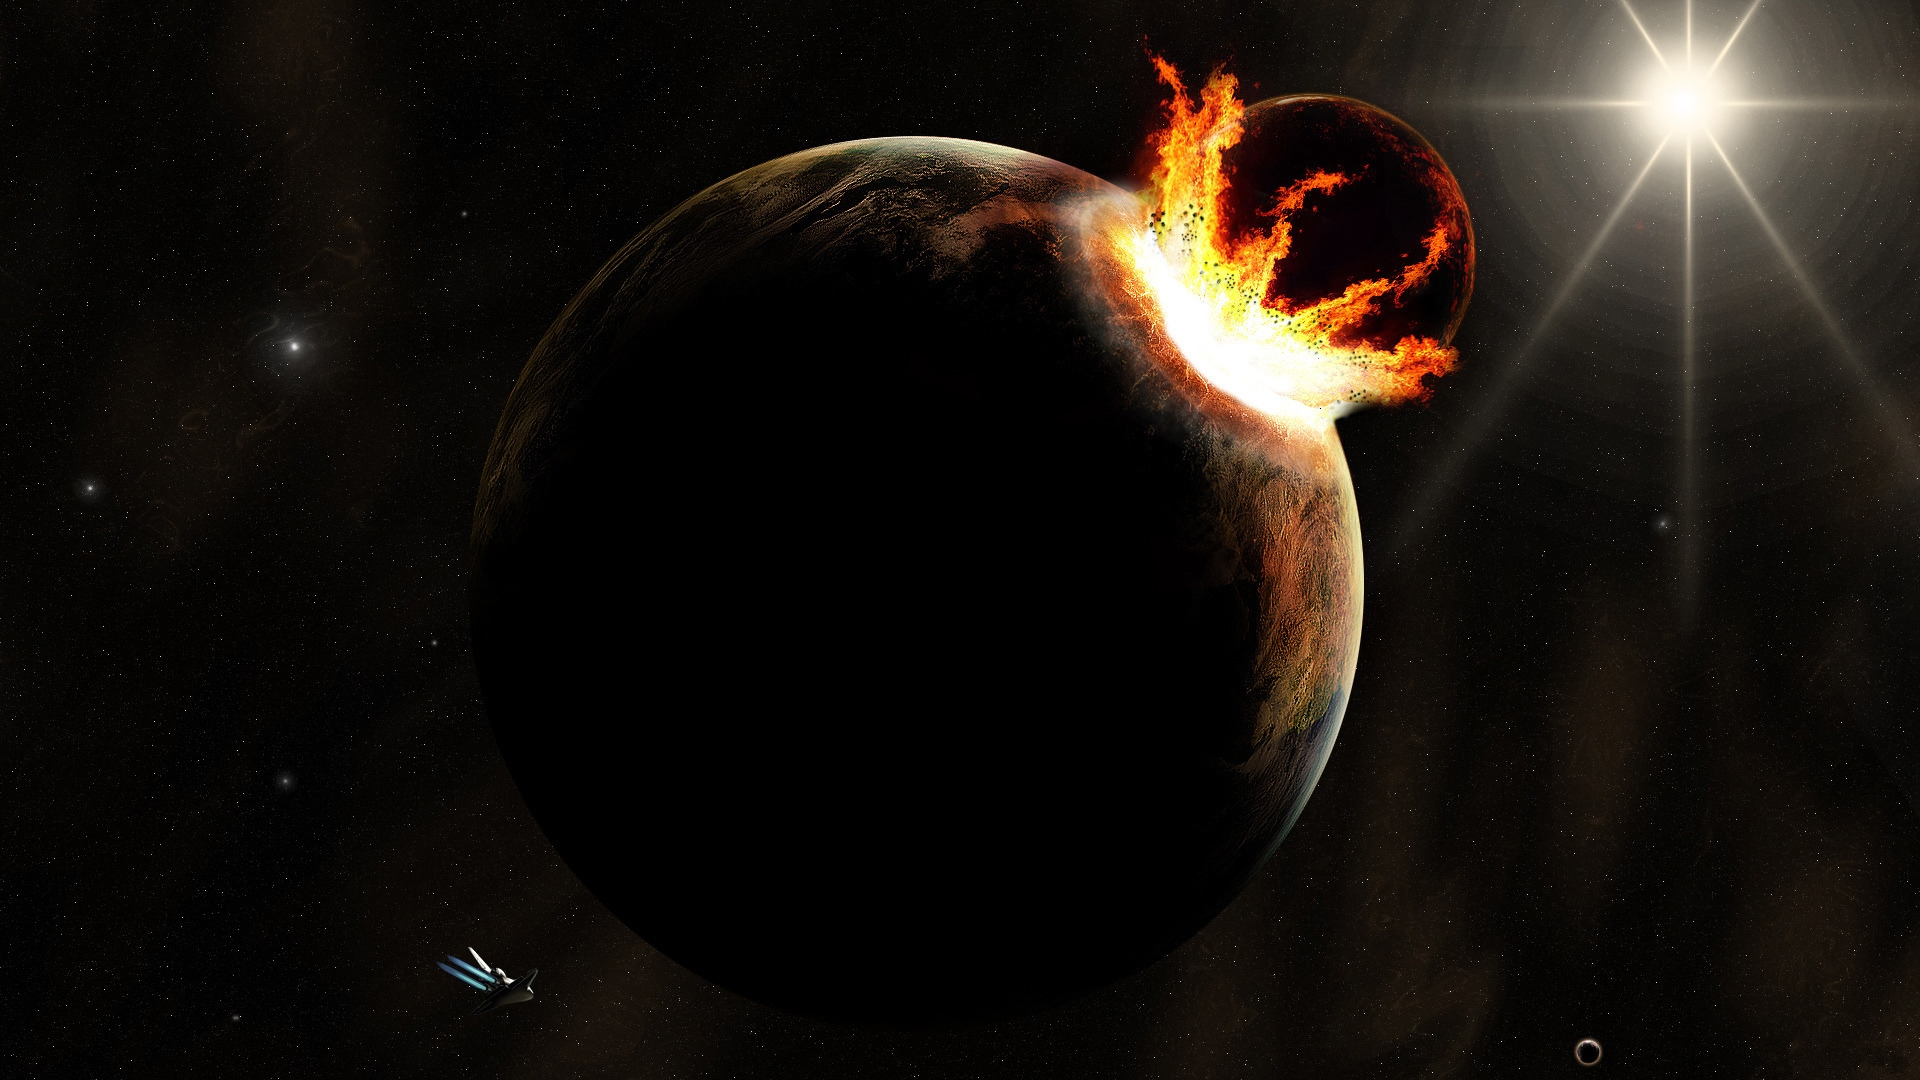 Deep-impact-Asteroid-hit-a-planet-wallpaper_6180 | The ...